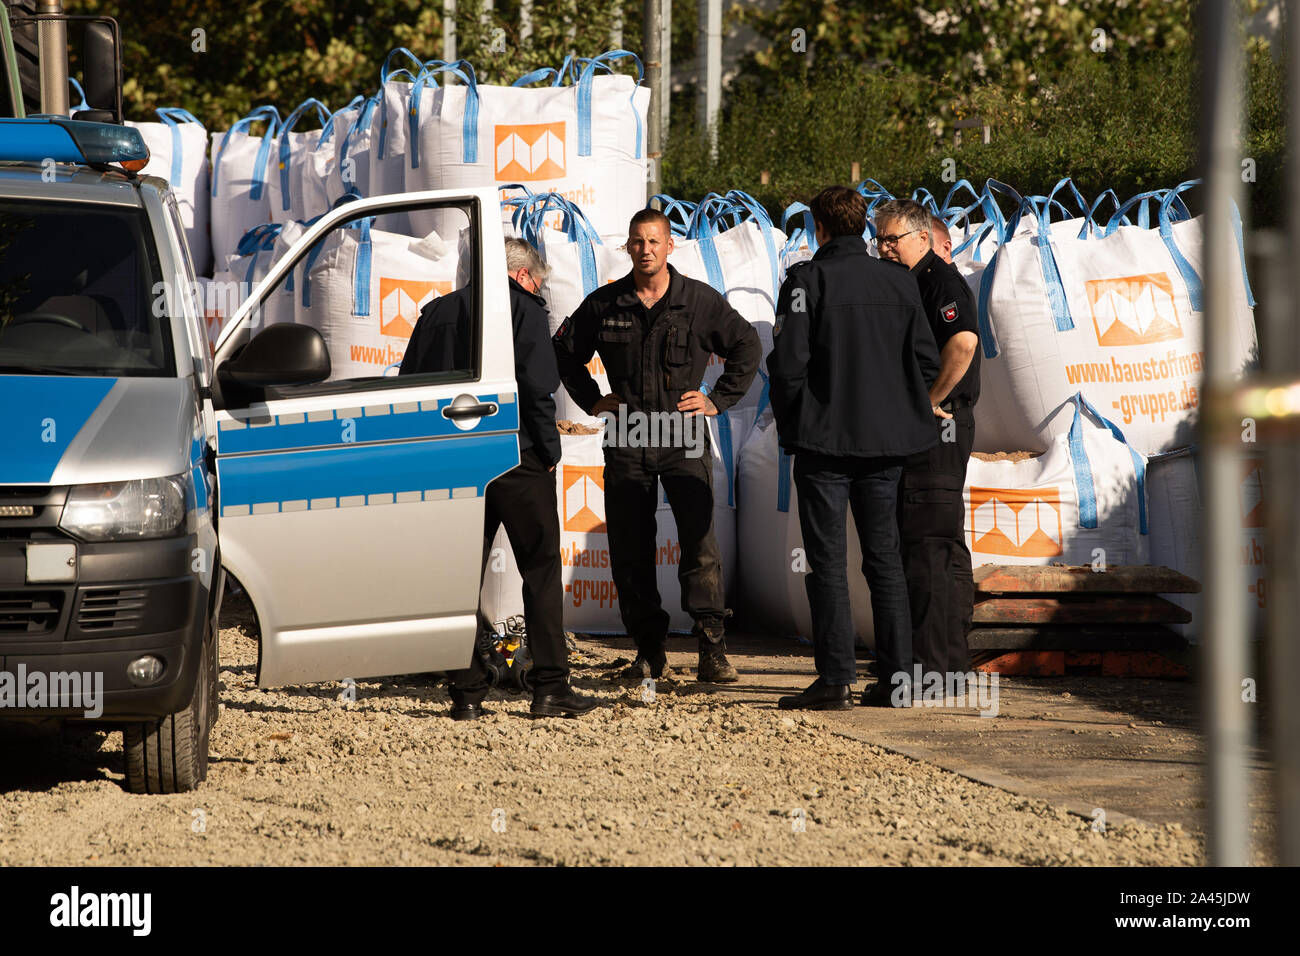 12 October 2019, Lower Saxony, Göttingen: Thorsten Lüdeke (M), demolition engineer of the Lower Saxony Explosive Ordnance Removal Service, stands with colleagues at the site where the remains of metal drums, slag and clay bricks were found, which were found on a heap in the ground and were originally suspected as a world war bomb. In the morning about 14,000 people were evacuated around the site. Photo: Swen Pförtner/dpa Stock Photo